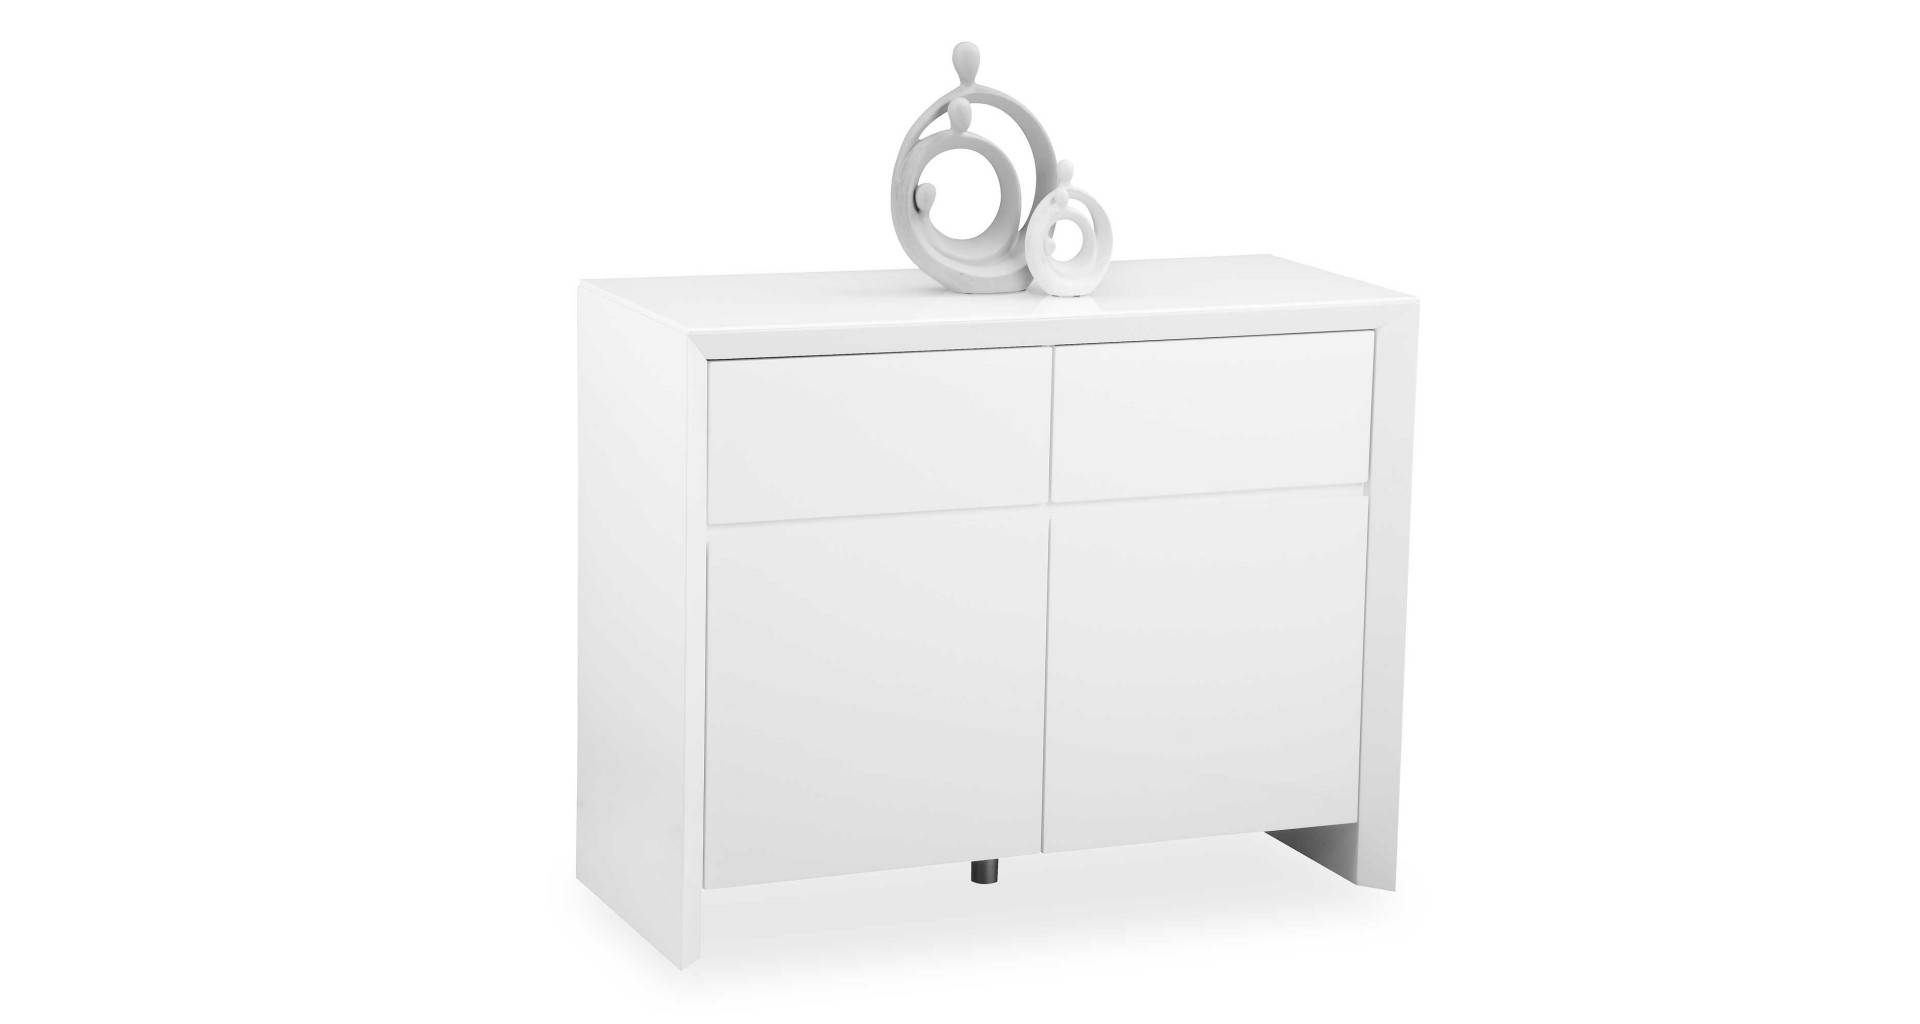 Soho - White - Small Sideboard - High Gloss regarding White Gloss Sideboards (Image 26 of 30)